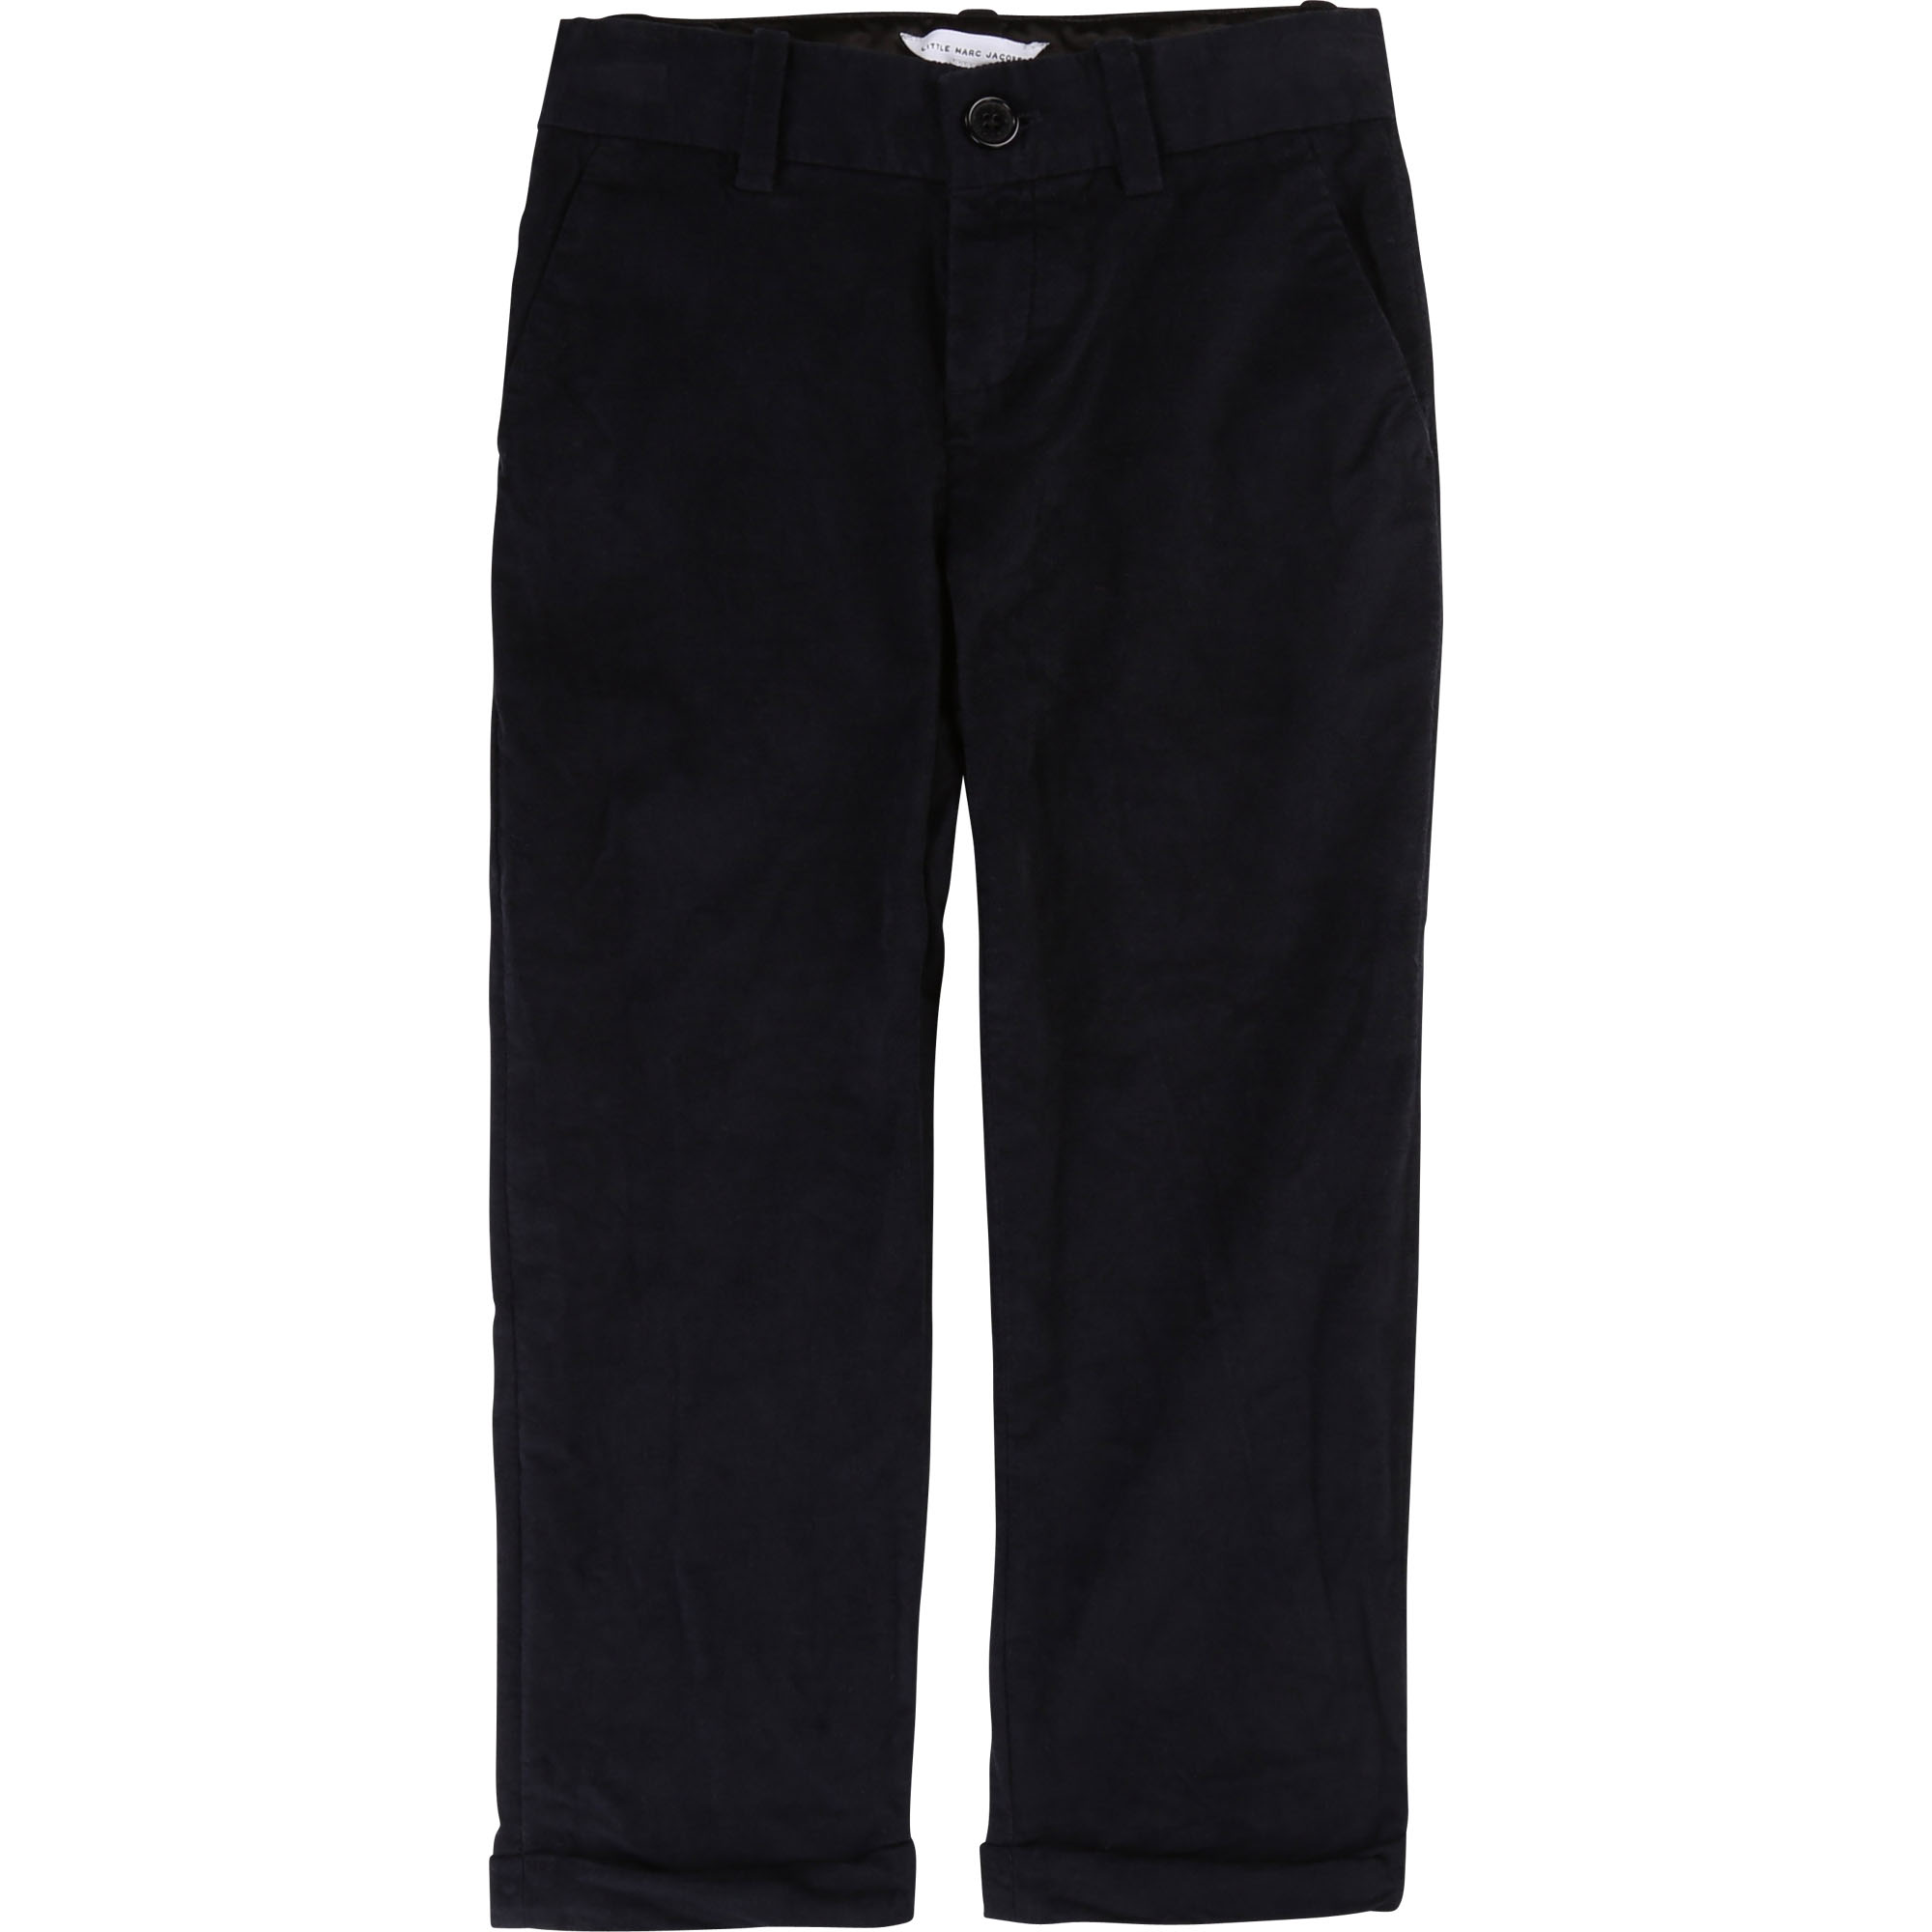 Pantalon velours 100% coton LITTLE MARC JACOBS pour GARCON